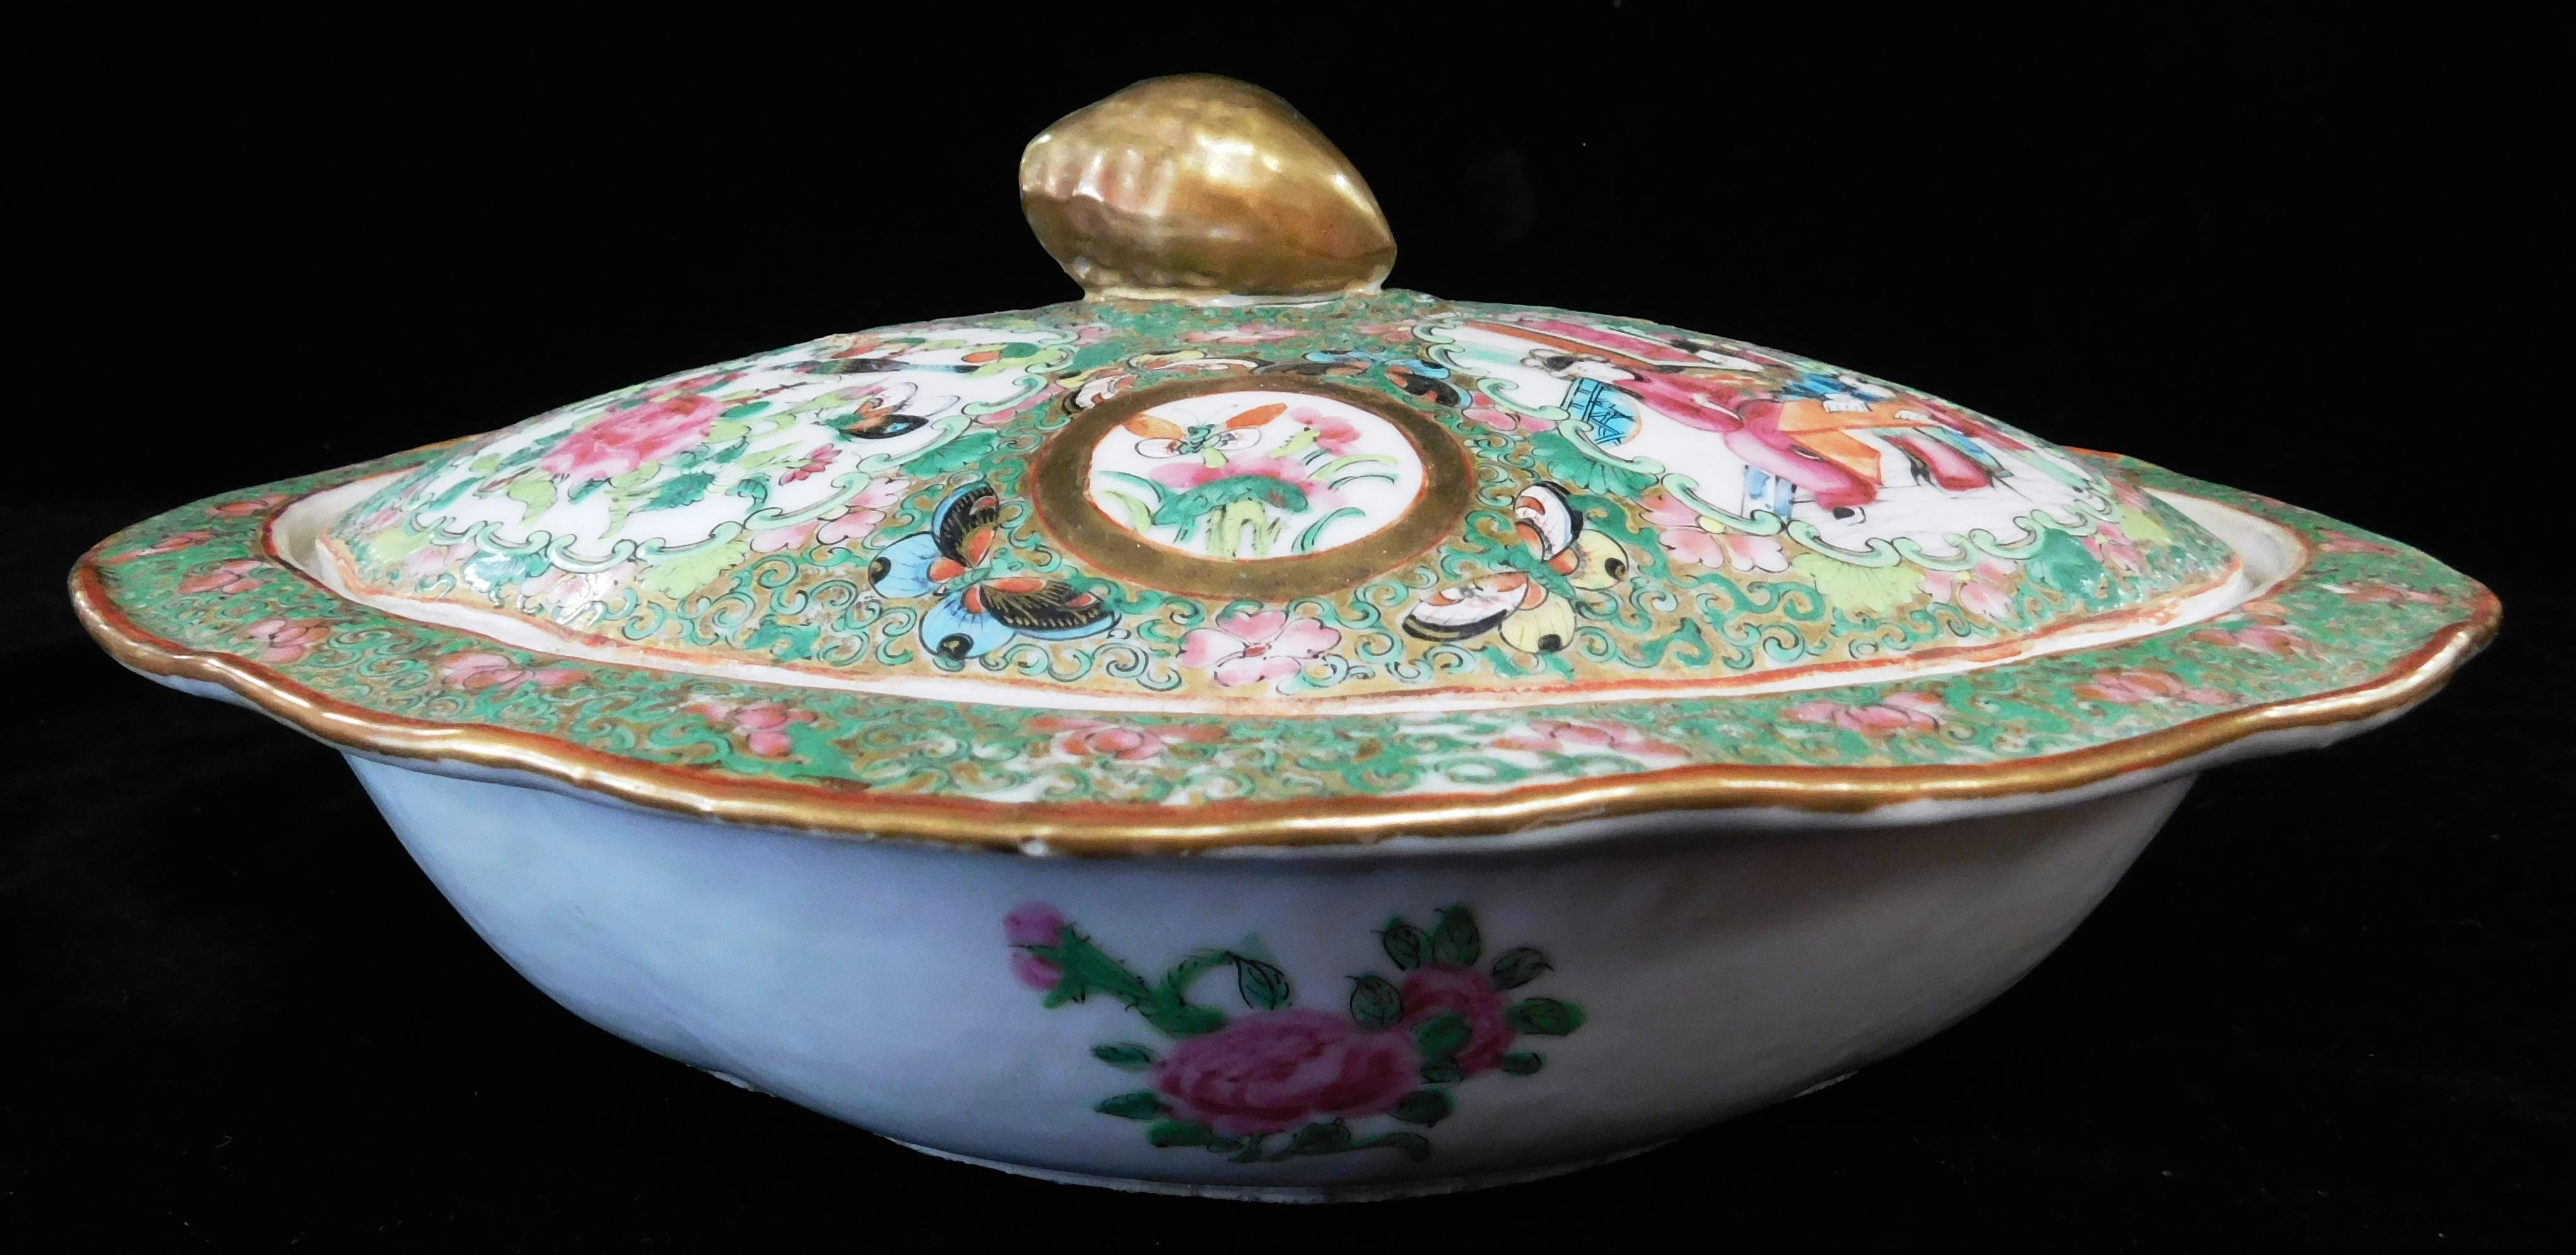 ASIAN: Chinese Export porcelain covered vegetable dish, 19th C., Rose Medallion pattern, oval with gilt finial, wear consistent with...